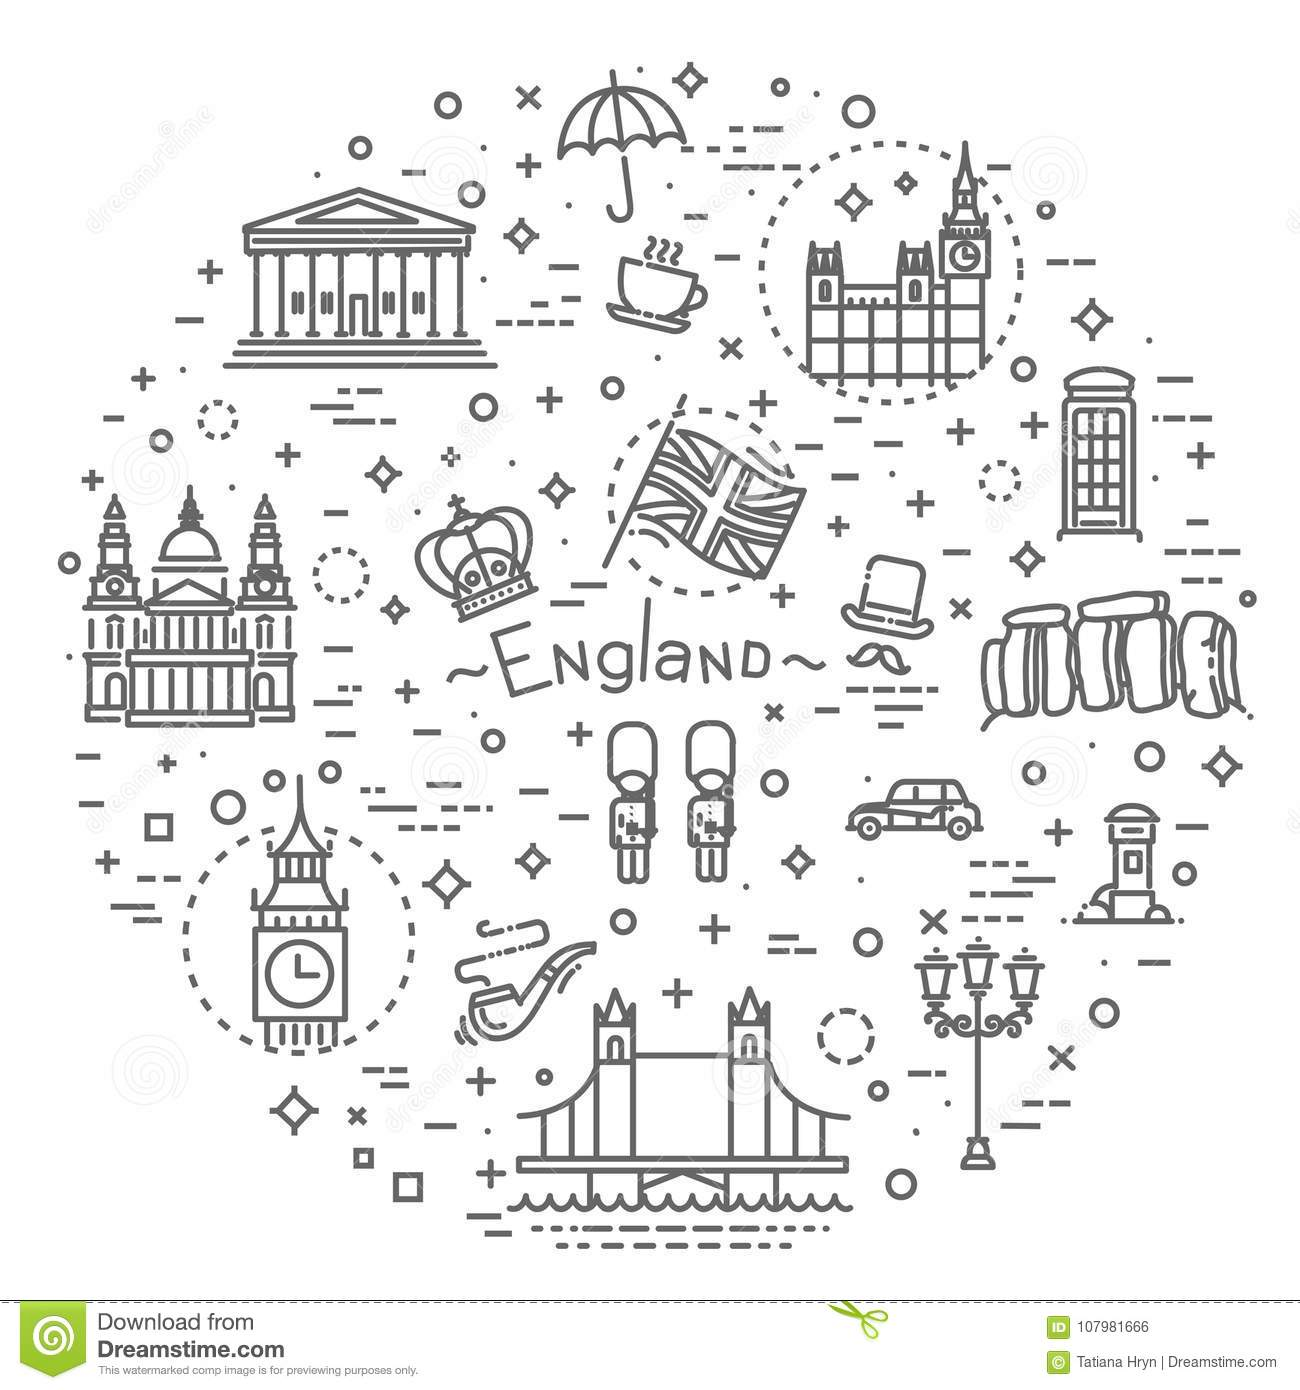 britain coloring pages - photo#23